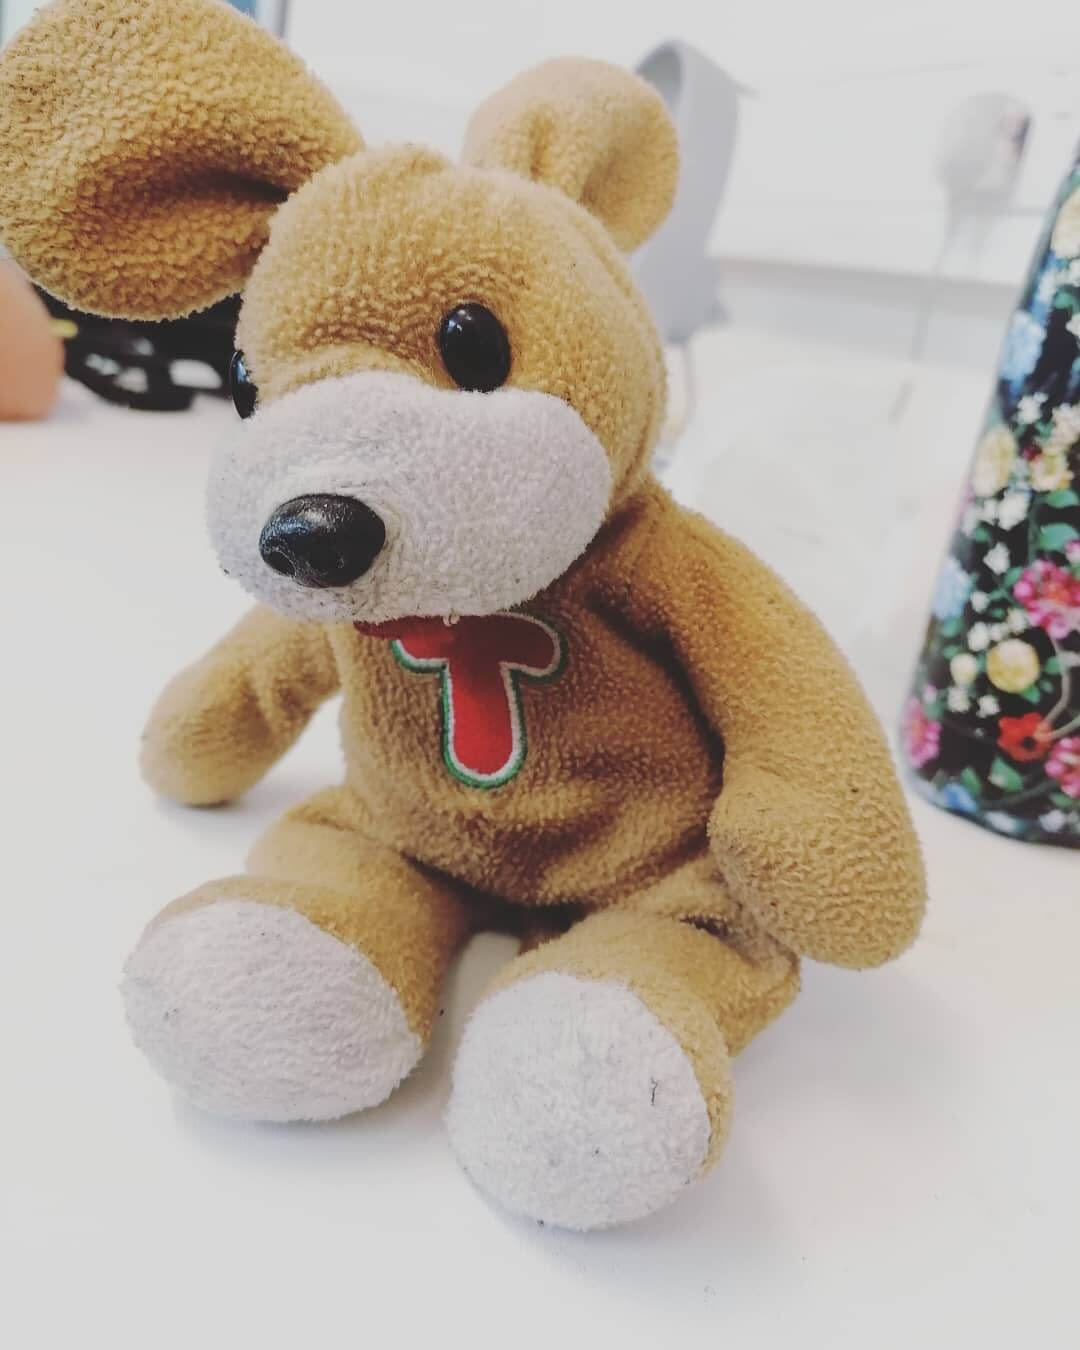 Lost teddy found on Foundry Street.  Swing by if yours or get in contact. We will be sure to look after them until then 😊  Feel free to share to help it find its owner